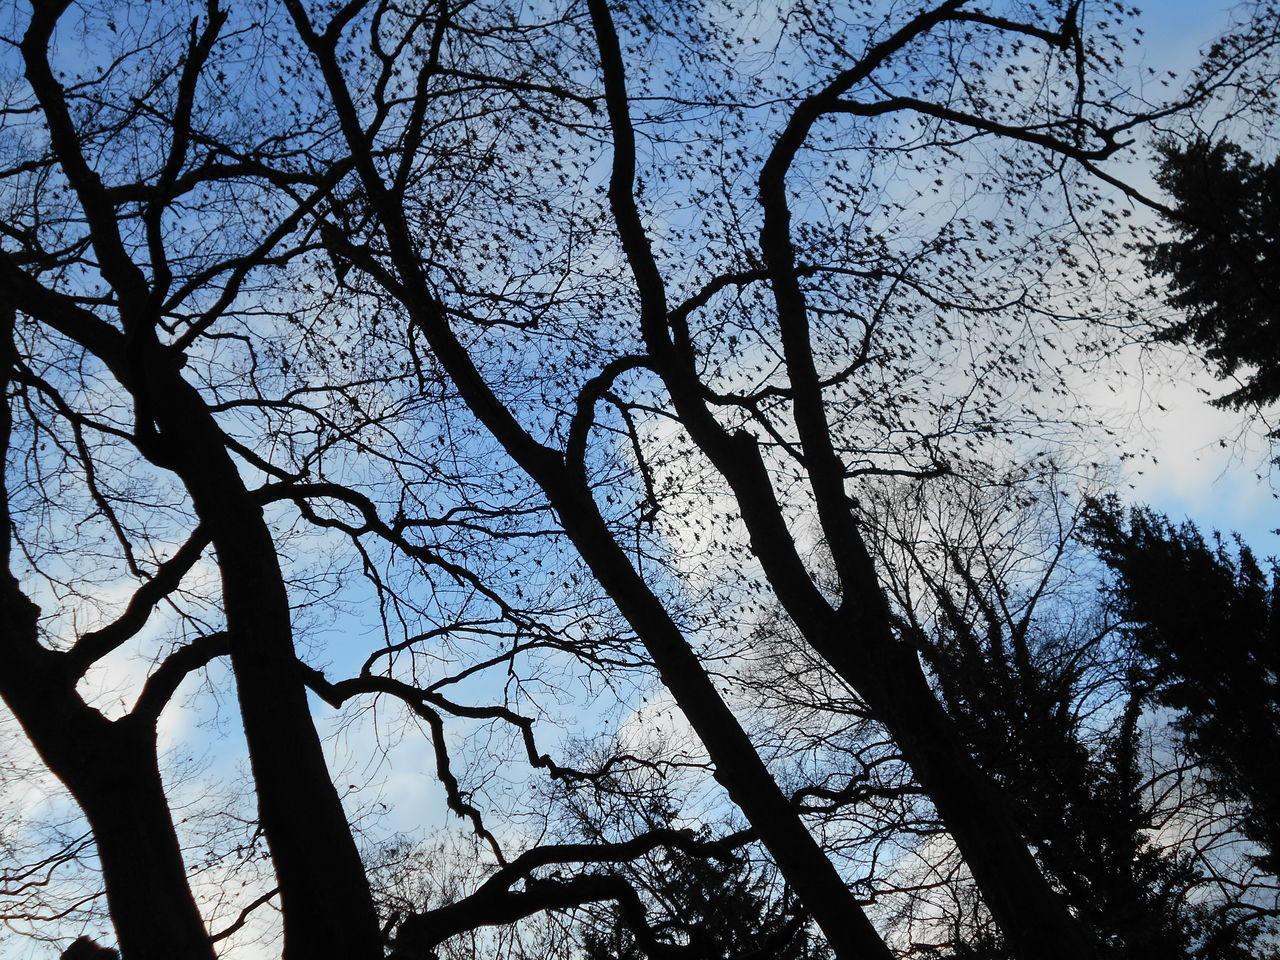 tree, branch, nature, bare tree, beauty in nature, no people, low angle view, tranquility, outdoors, silhouette, day, sky, scenics, clear sky